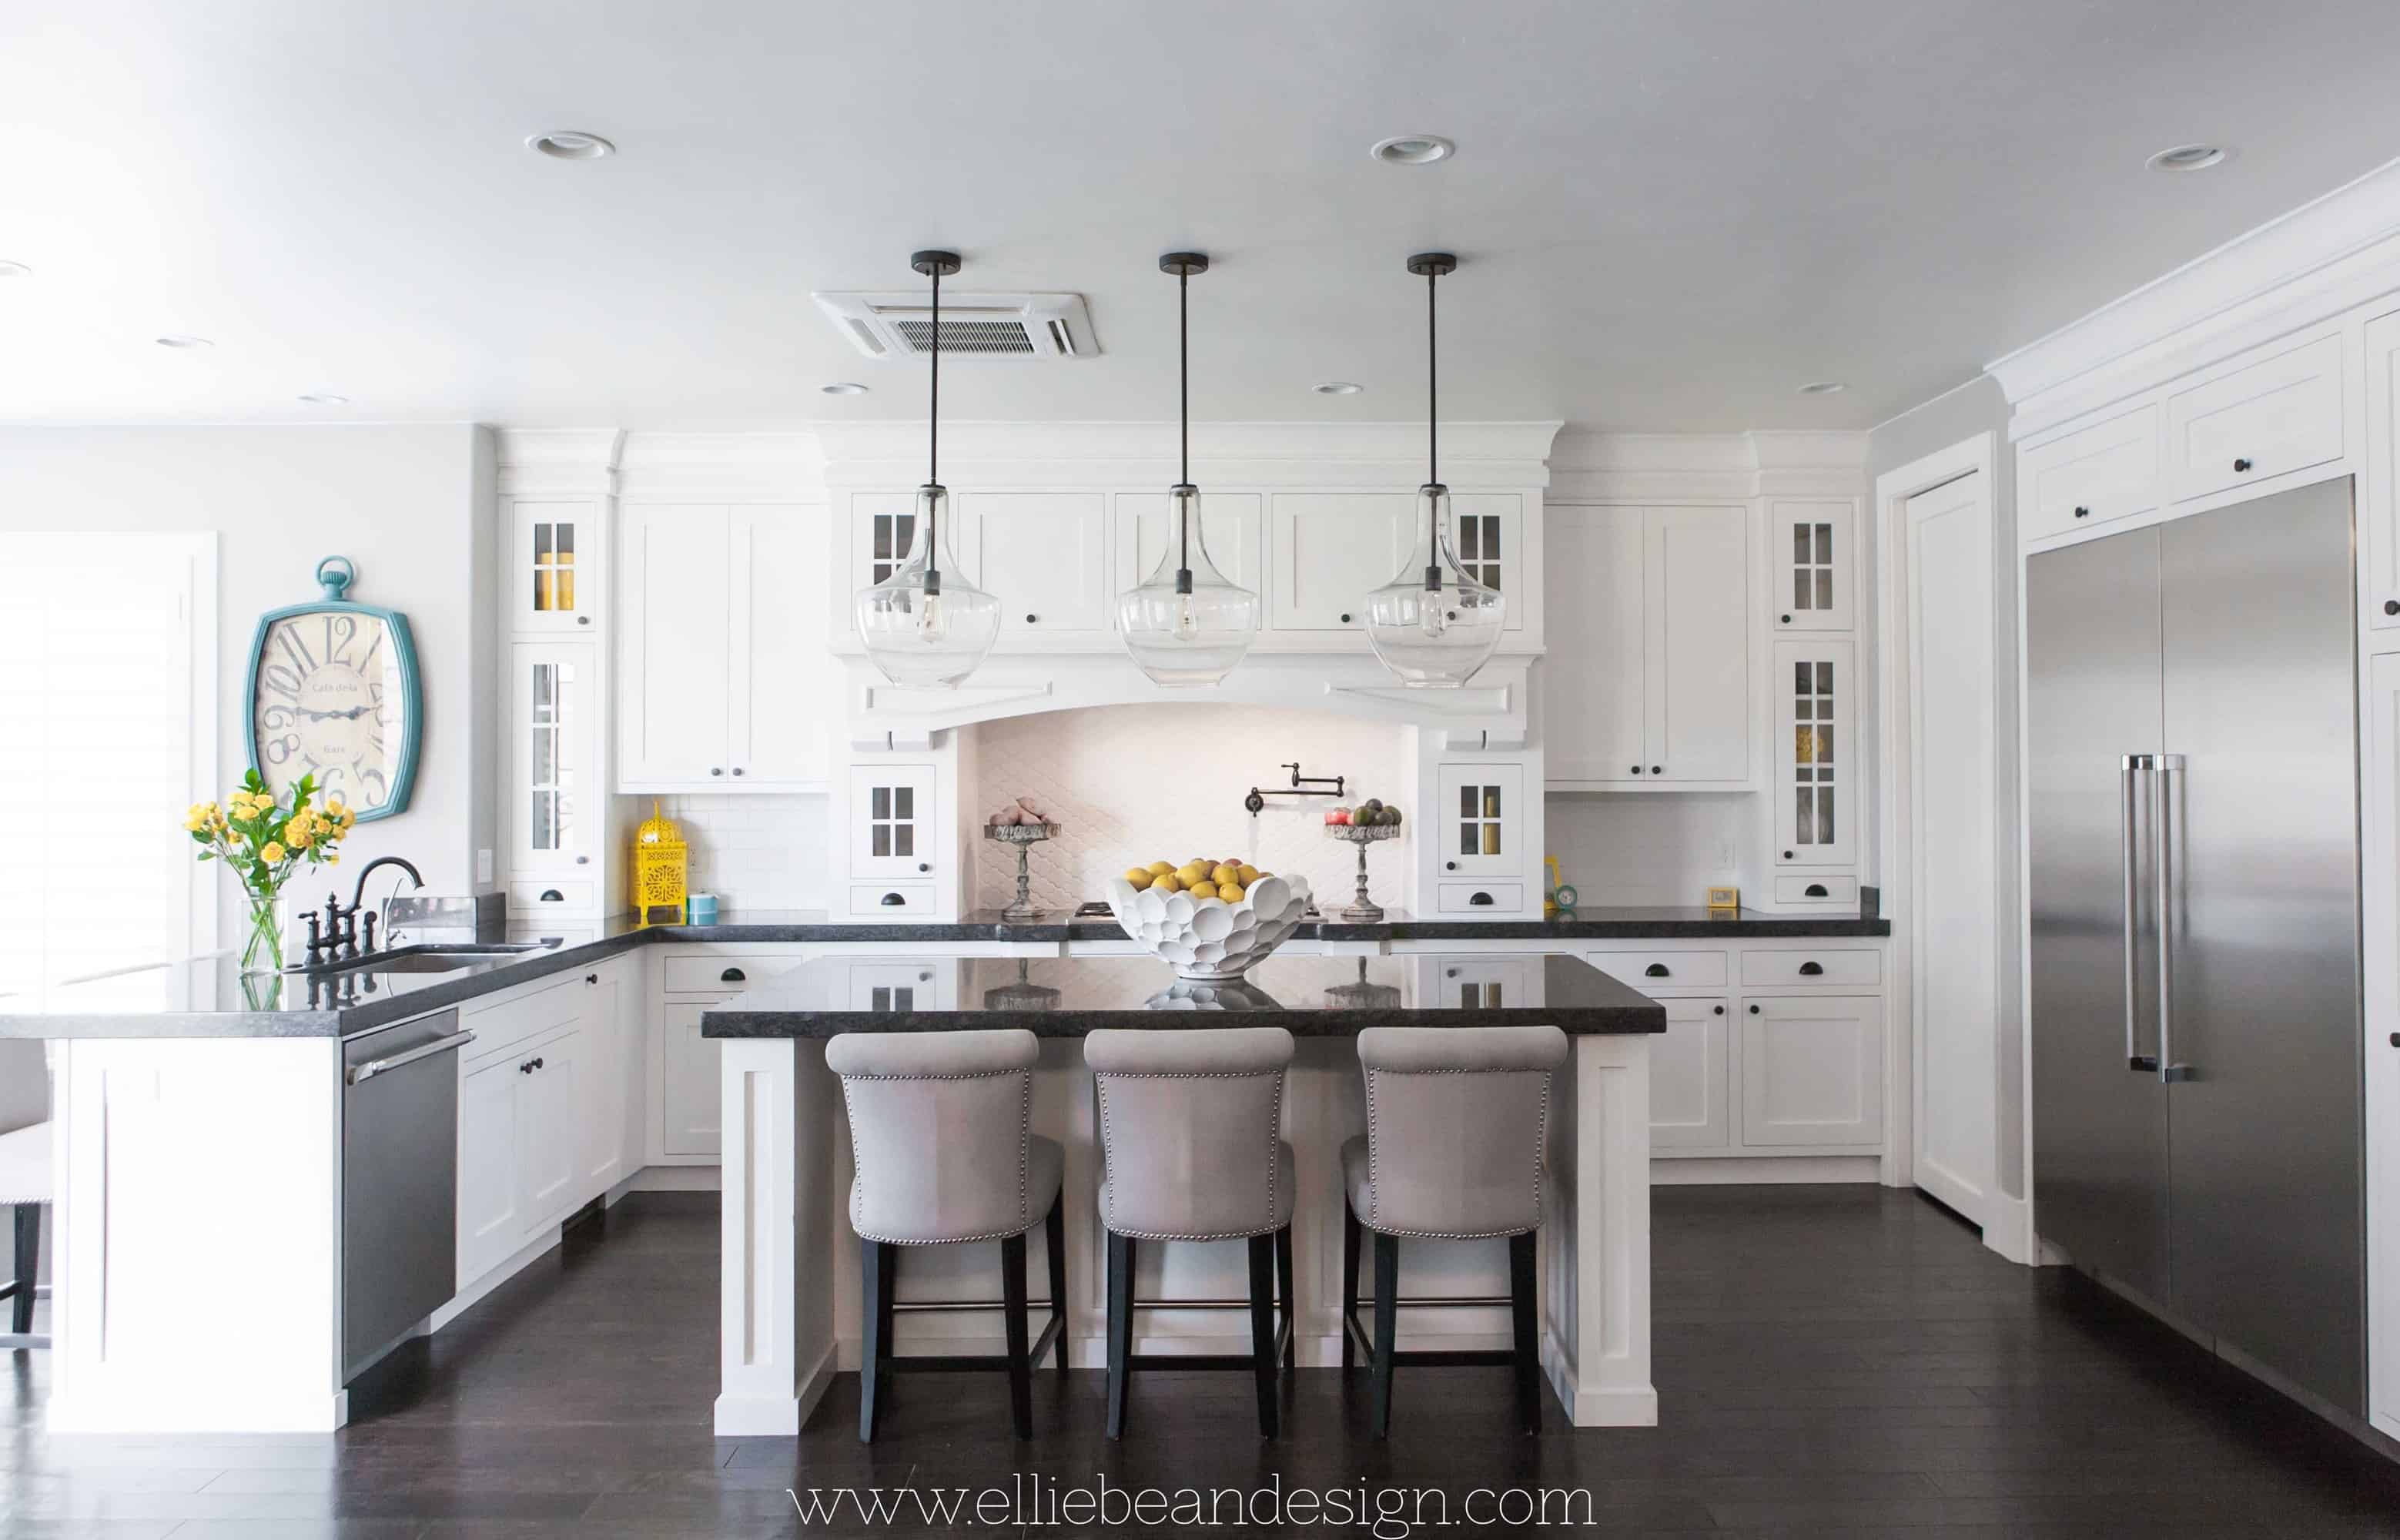 Merveilleux 10 Rules To Create The Perfect White Kitchen! Www.overthebigmoon.com